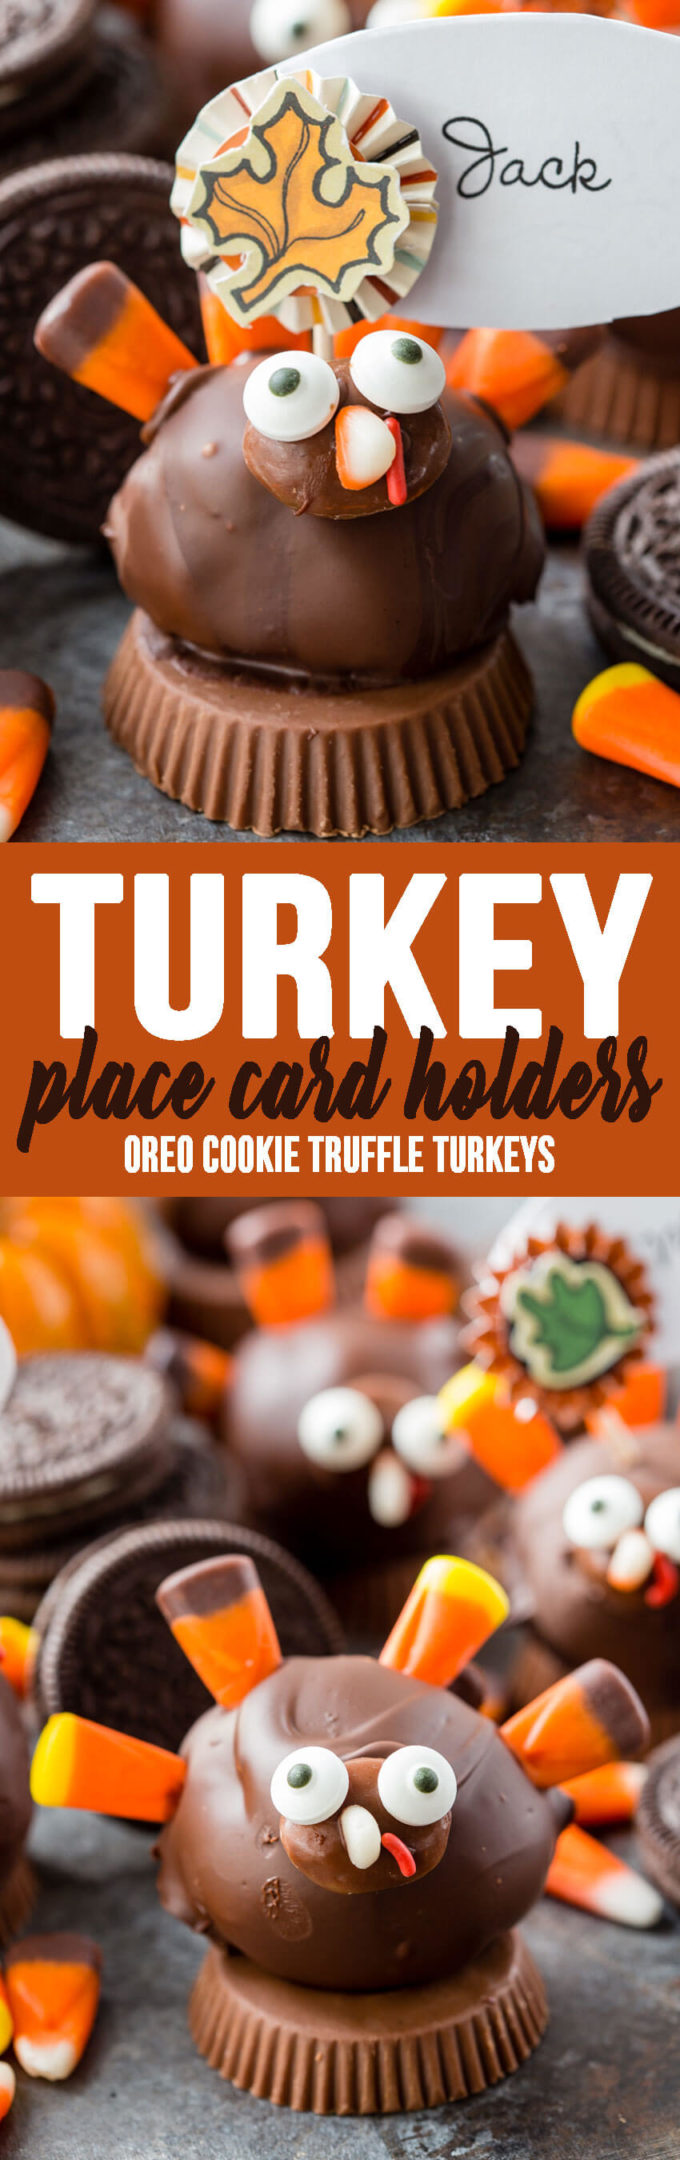 OREO Turkey Truffles turned into the cutest name card or place card holders for your Thanksgiving table.